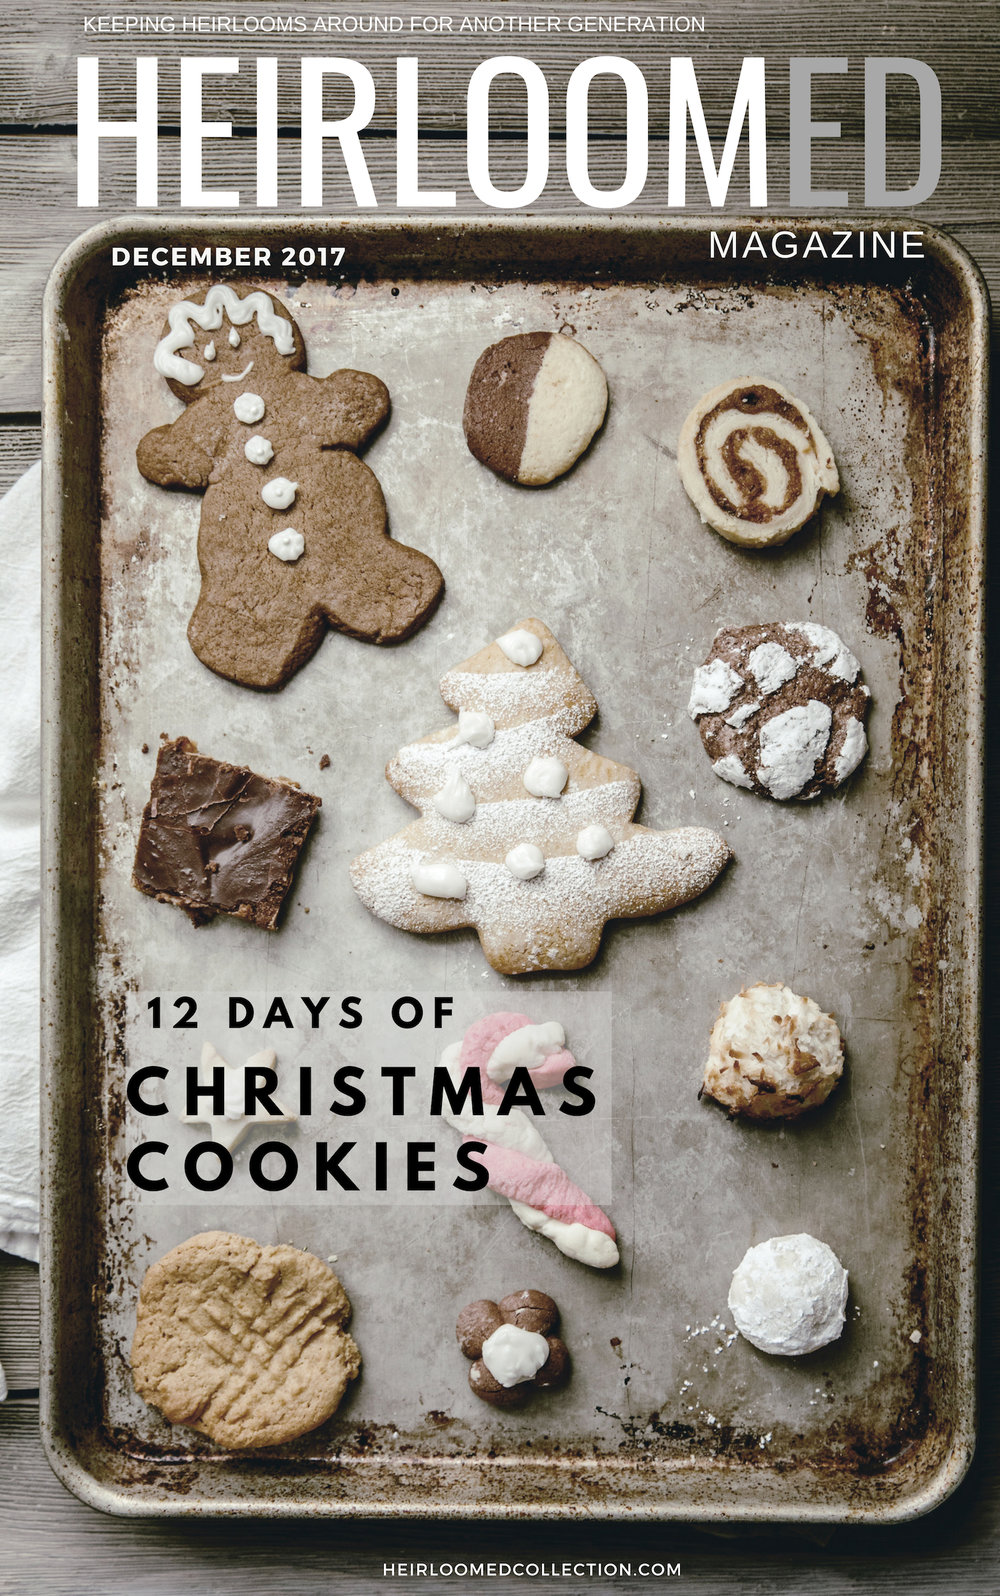 12 days of christmas cookies free ebook / heirloomed magazine